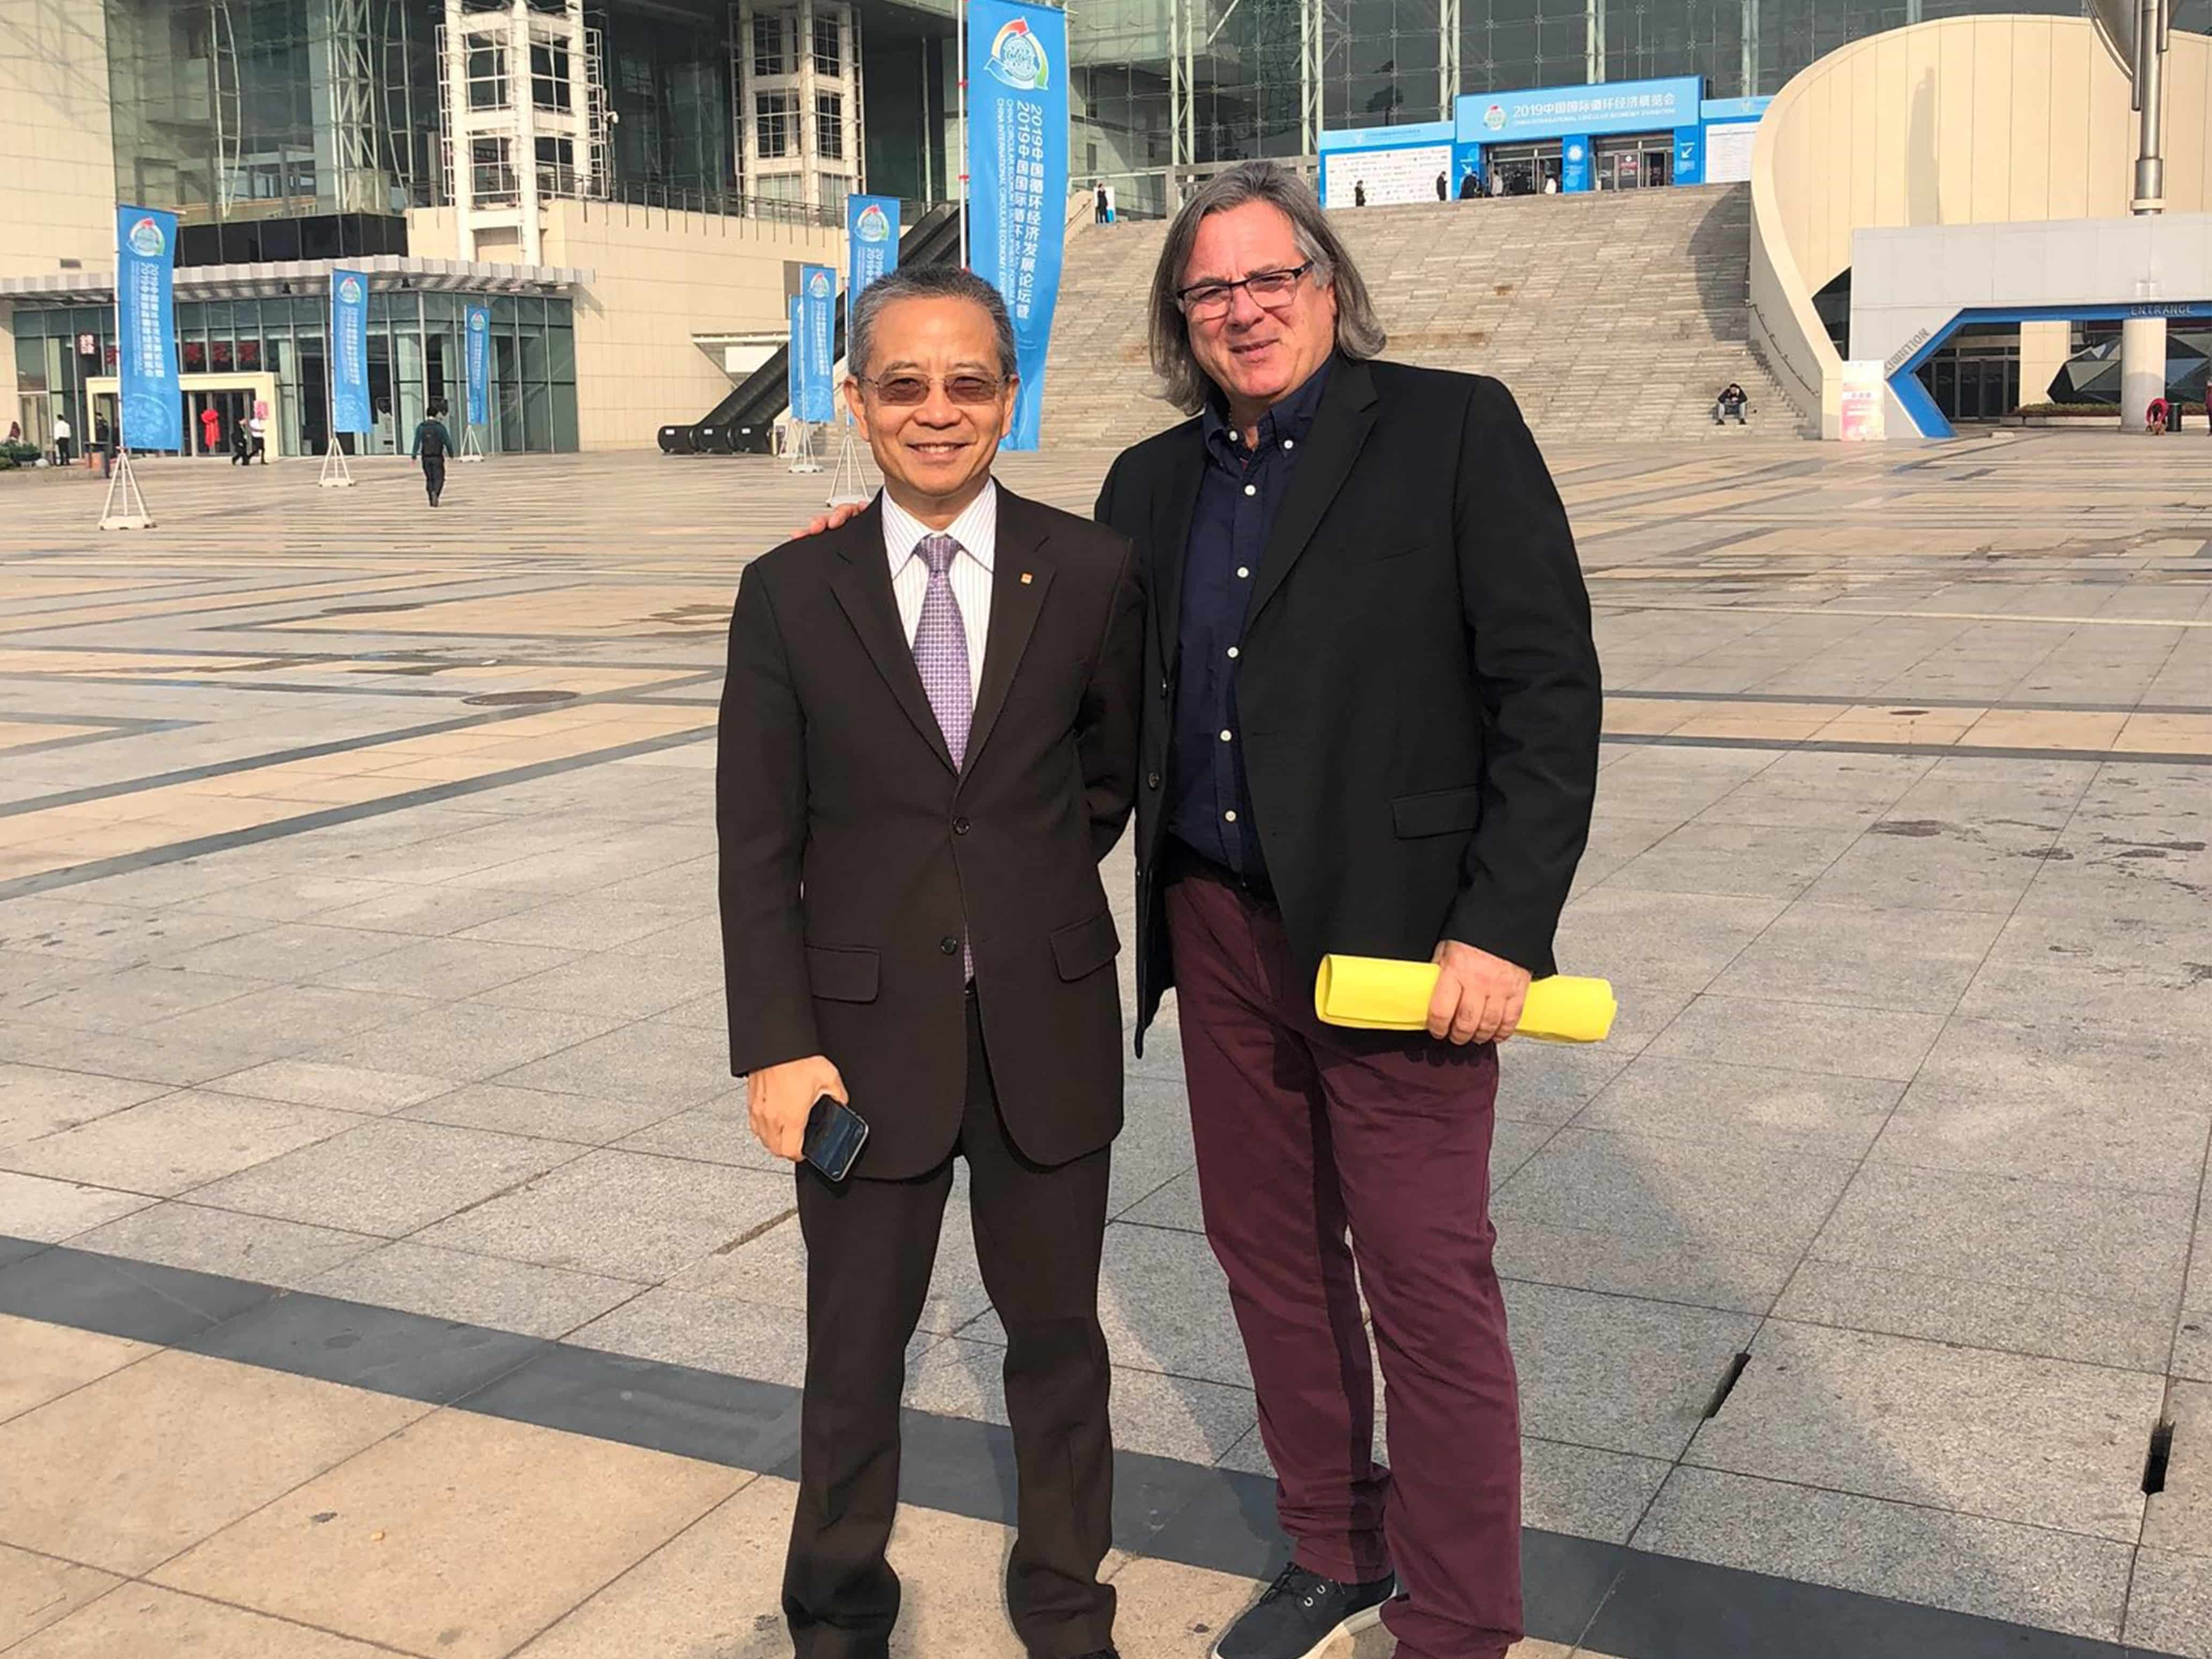 The President of the Organization for Climate and Circular Economy in Nanjing, China (21-23.10.2019)